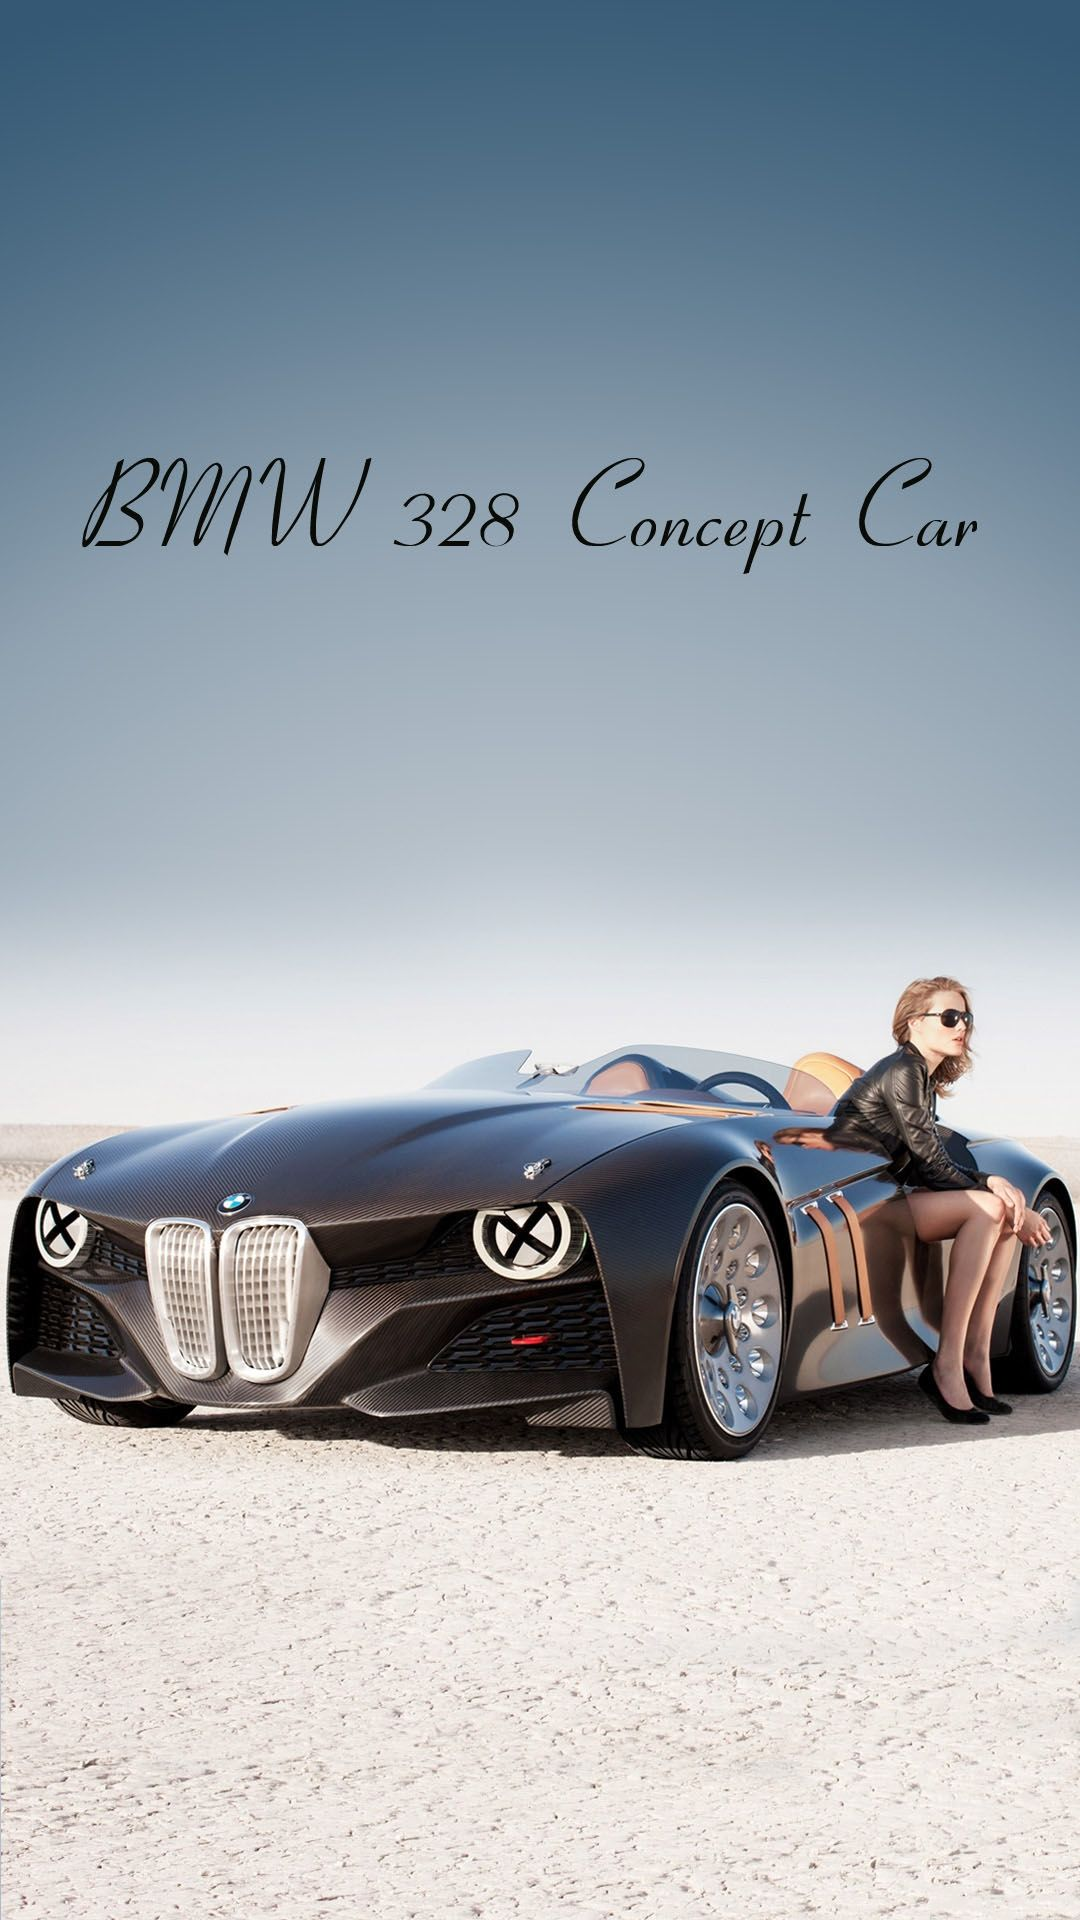 bmw 328 concept car iphone 6 plus hd wallpaper httpfreebestpicture